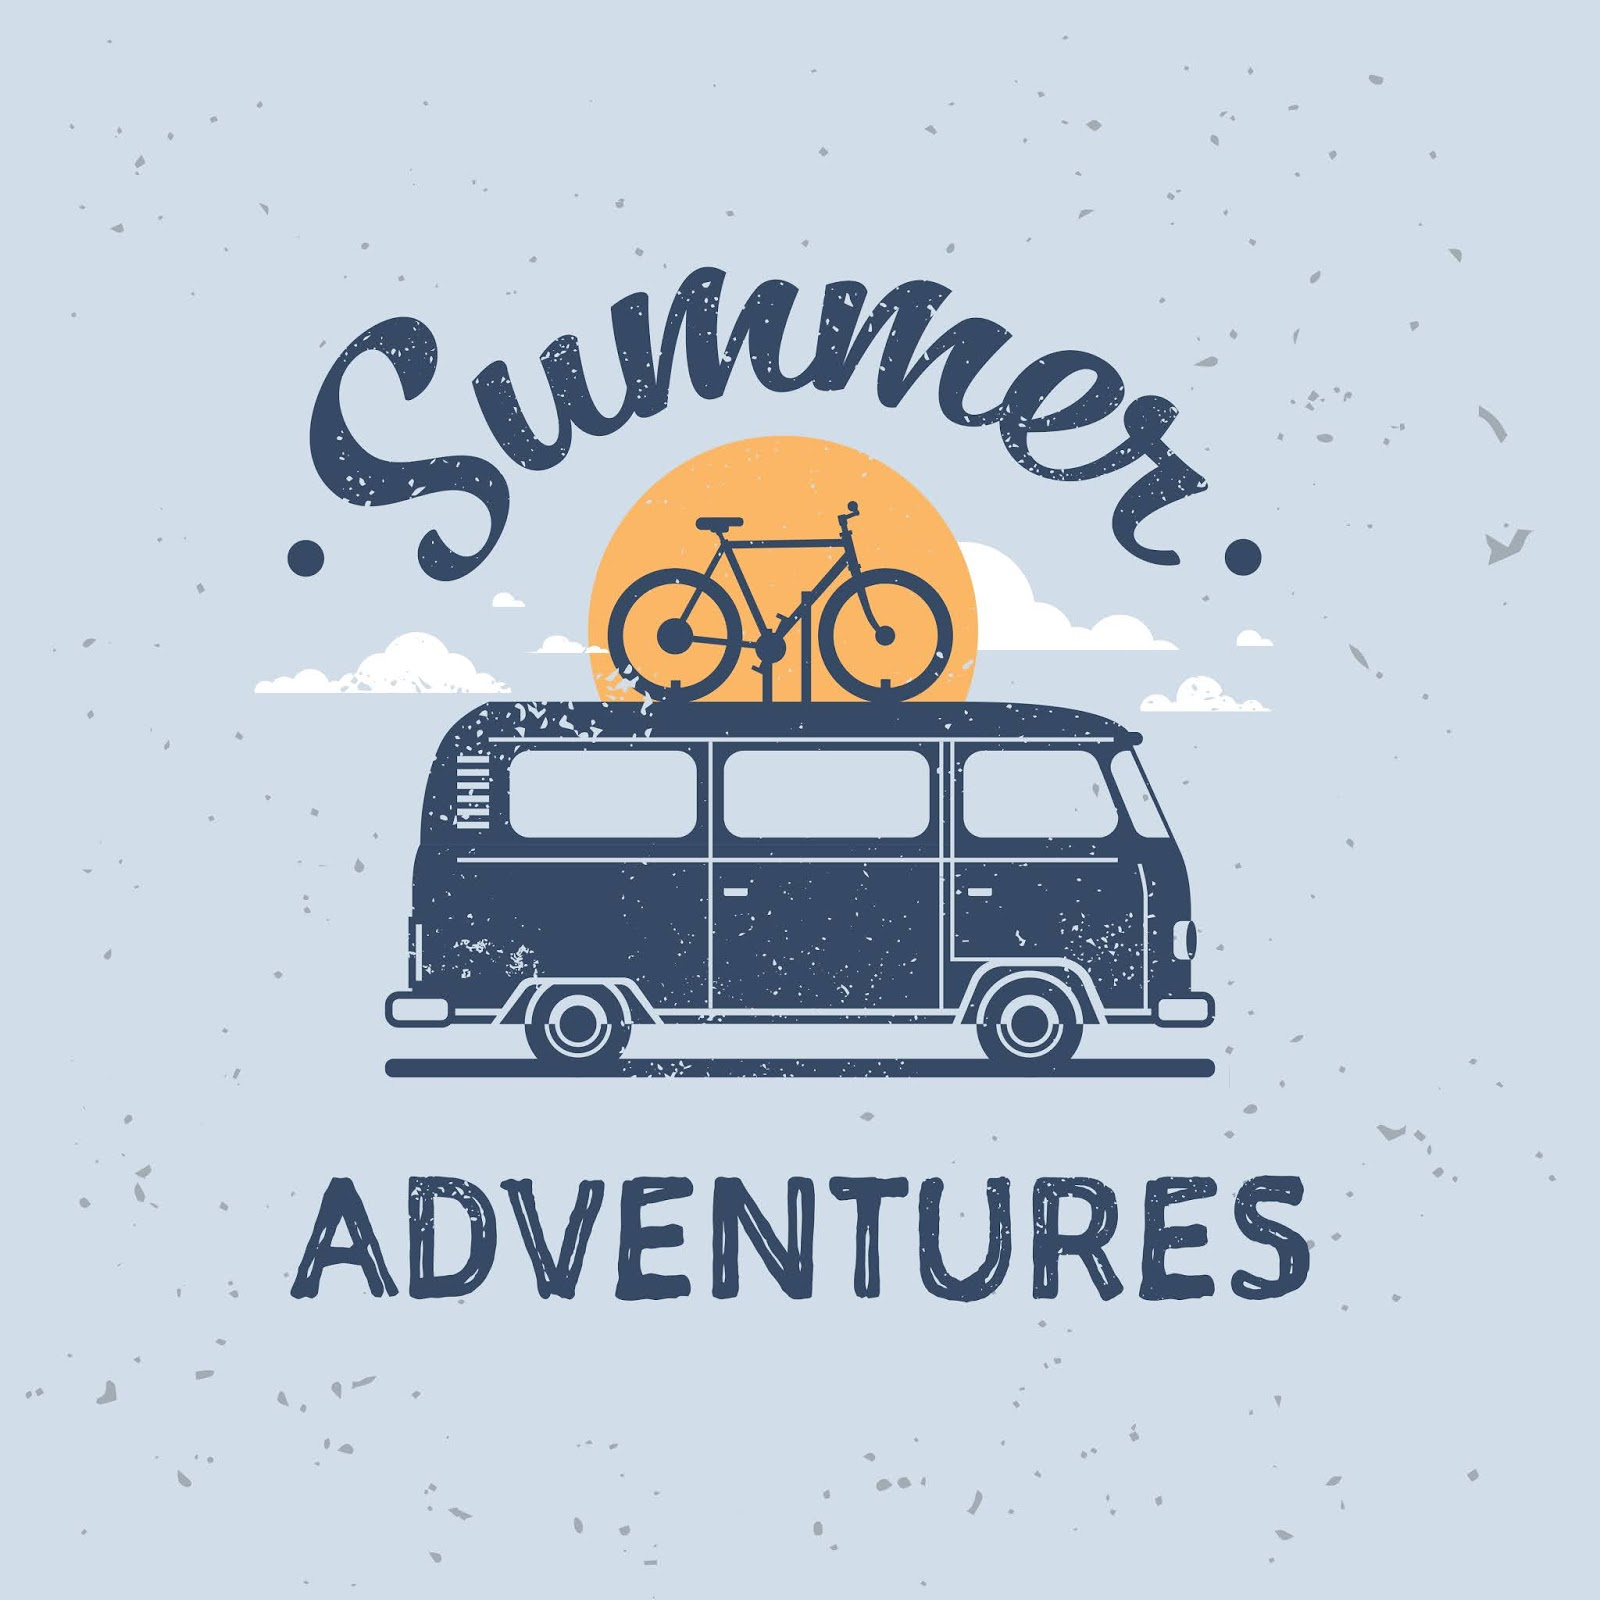 Summer Adventures Surf Bus Bike Retro Surfing Vintage	 Free Download Vector CDR, AI, EPS and PNG Formats